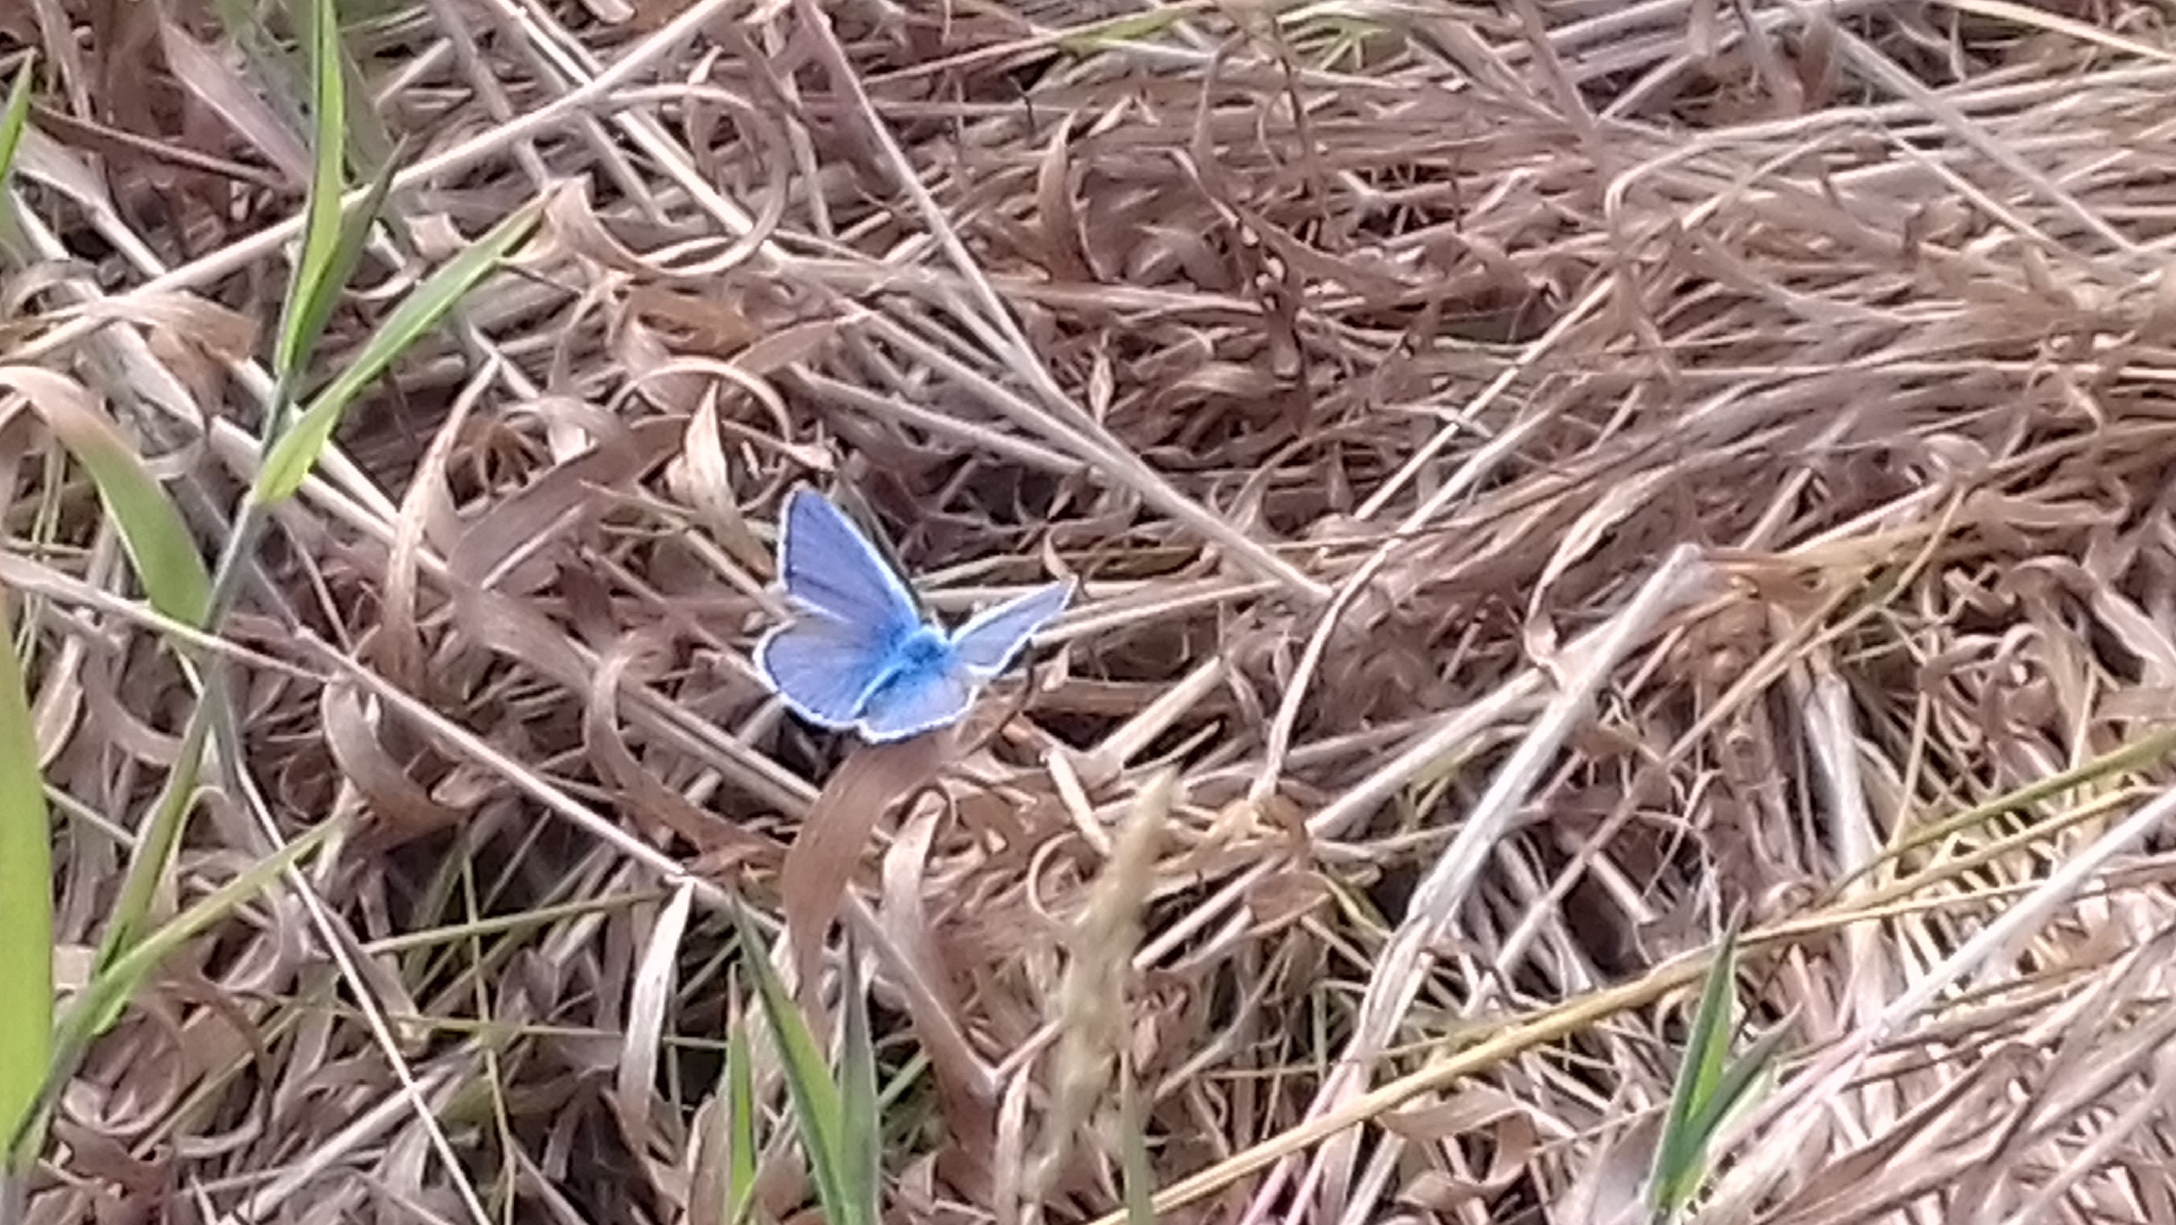 Image shows a British common blue butterfly sunning its wings while sitting on some dry grass. The butterfly's wings are bright blue with white edging.